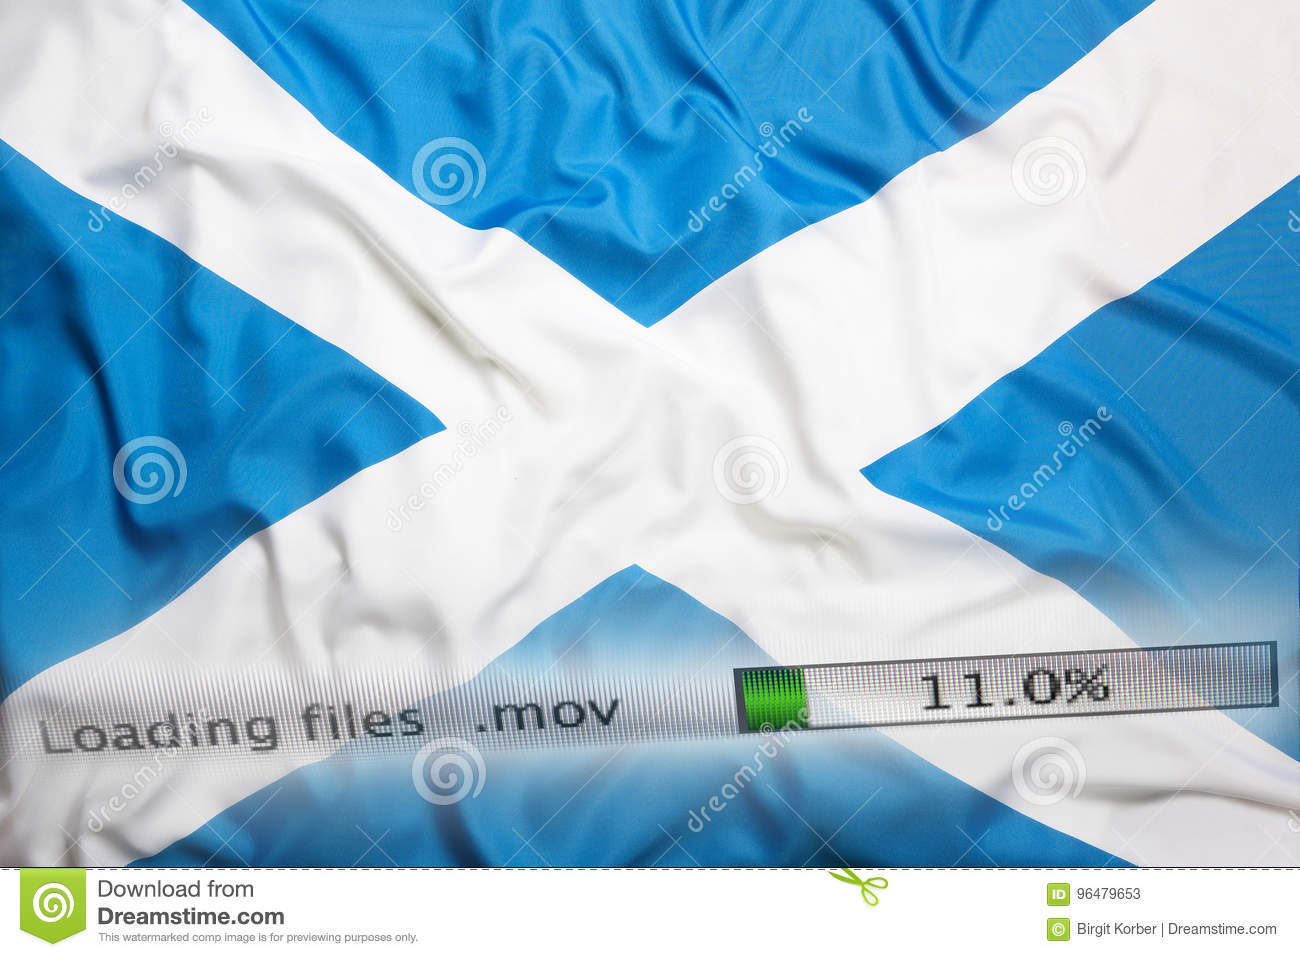 Downloading files on a computer, Scotland flag